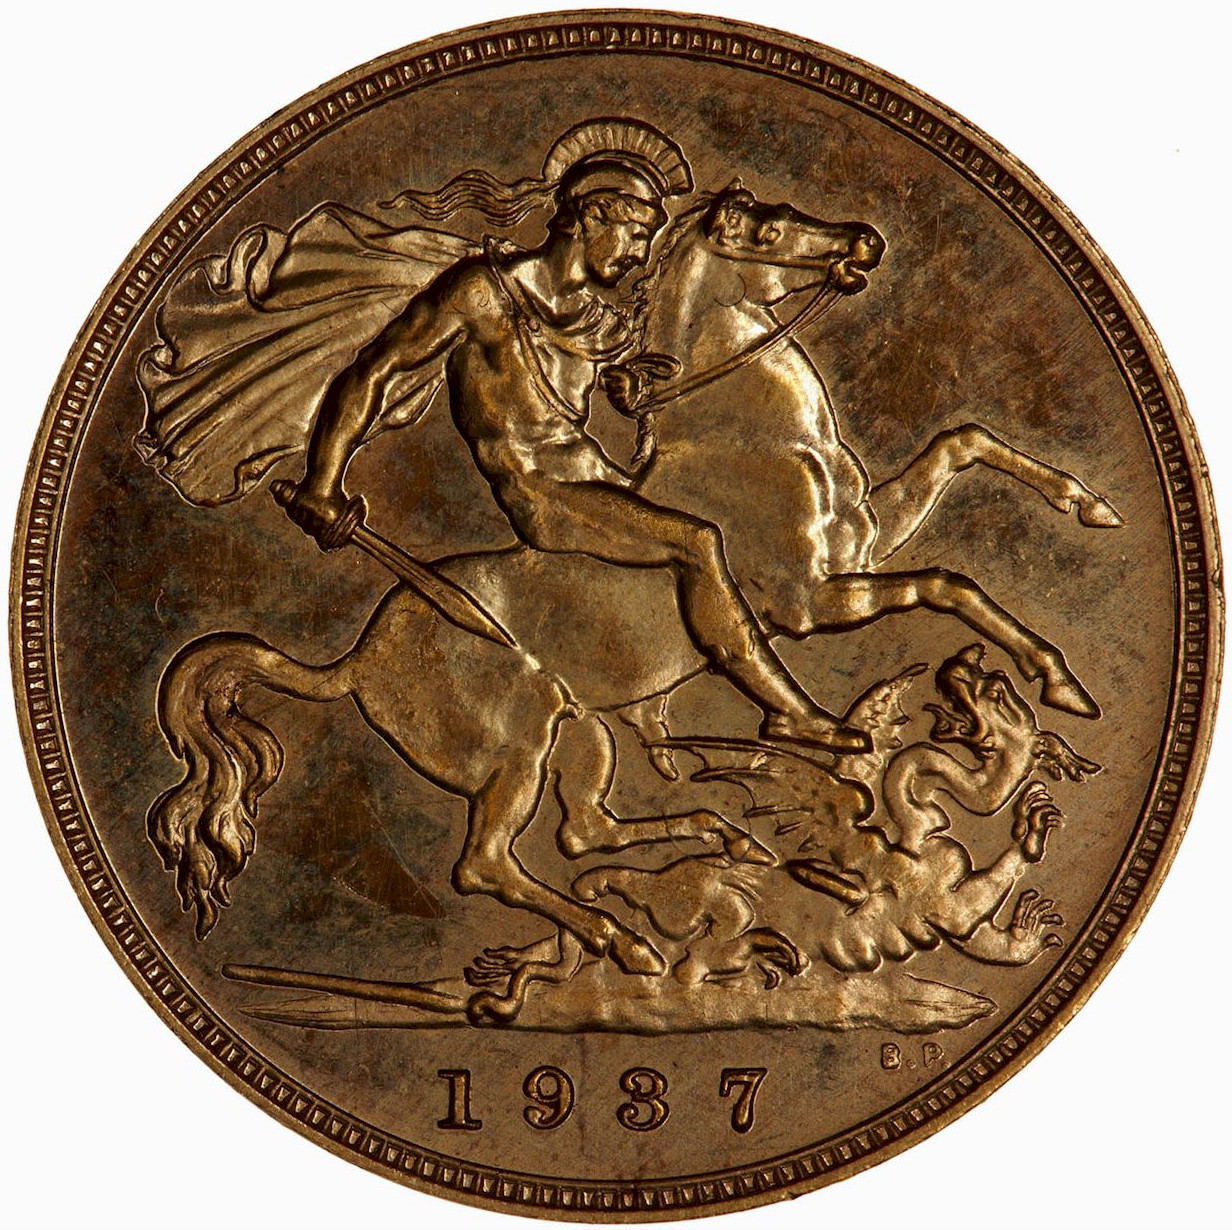 Half Sovereign 1937 (Proof only): Photo Proof Coin - Half-Sovereign, George VI, Great Britain, 1937